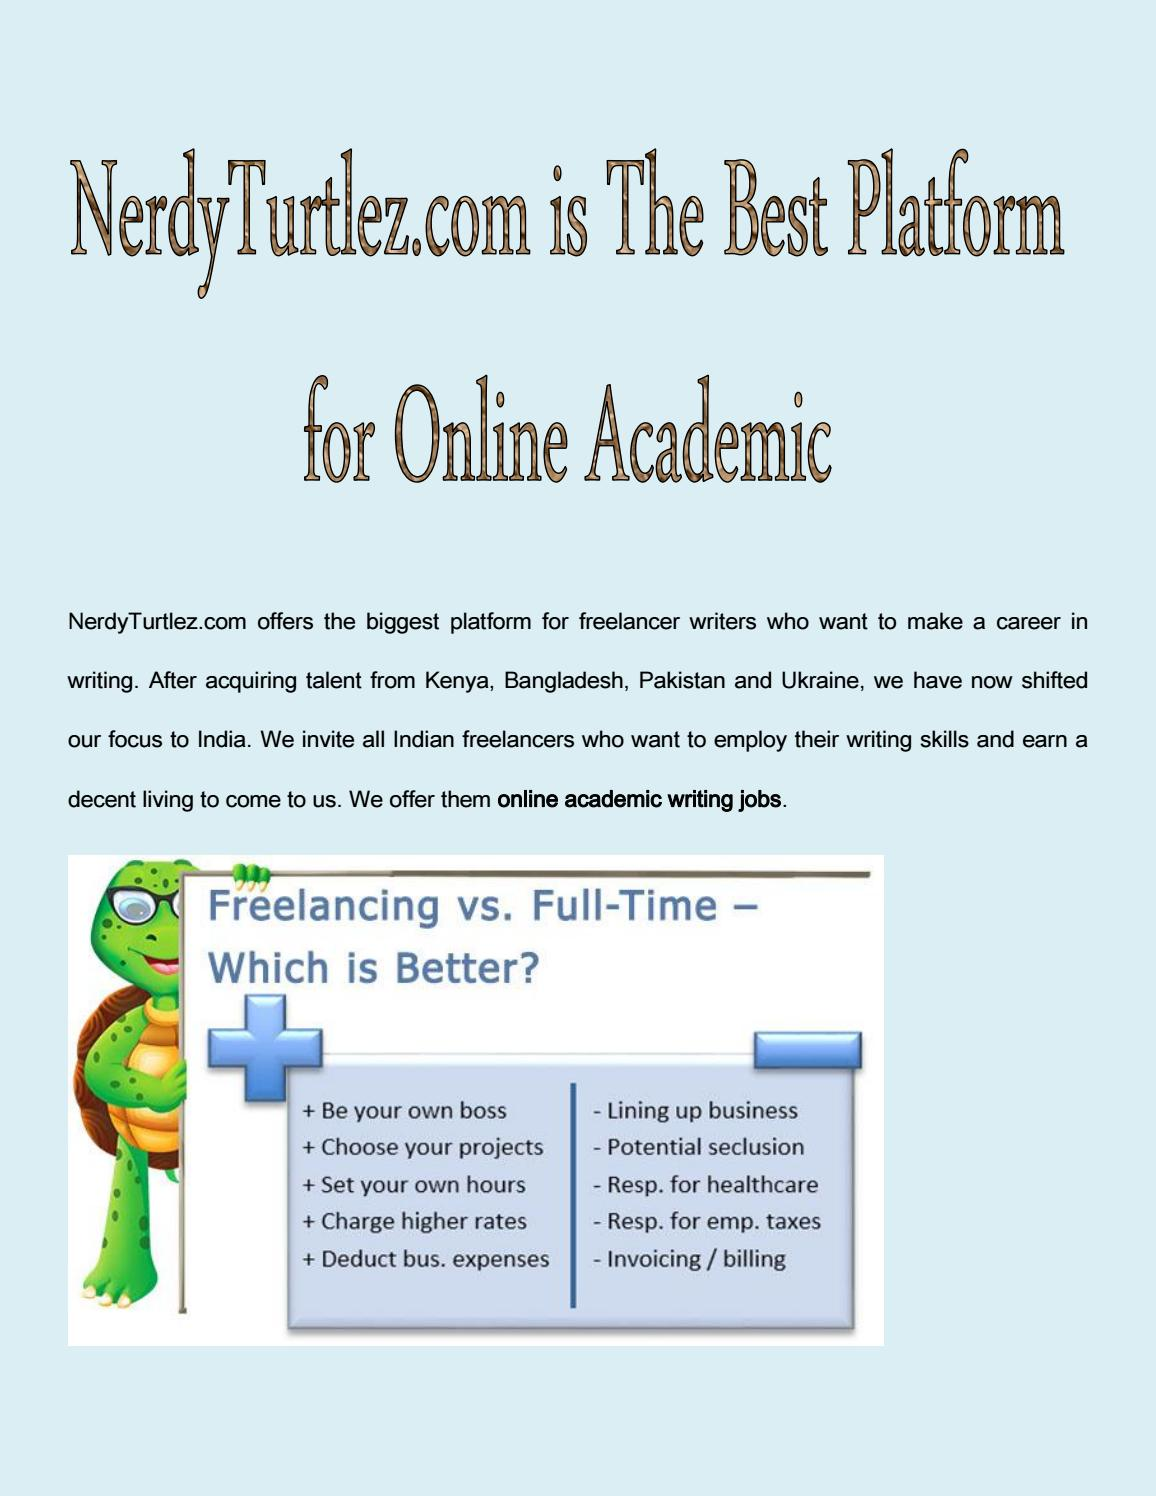 nerdyturtlez com is the best platform for online academic writing nerdyturtlez com is the best platform for online academic writing jobs in by mac larry issuu